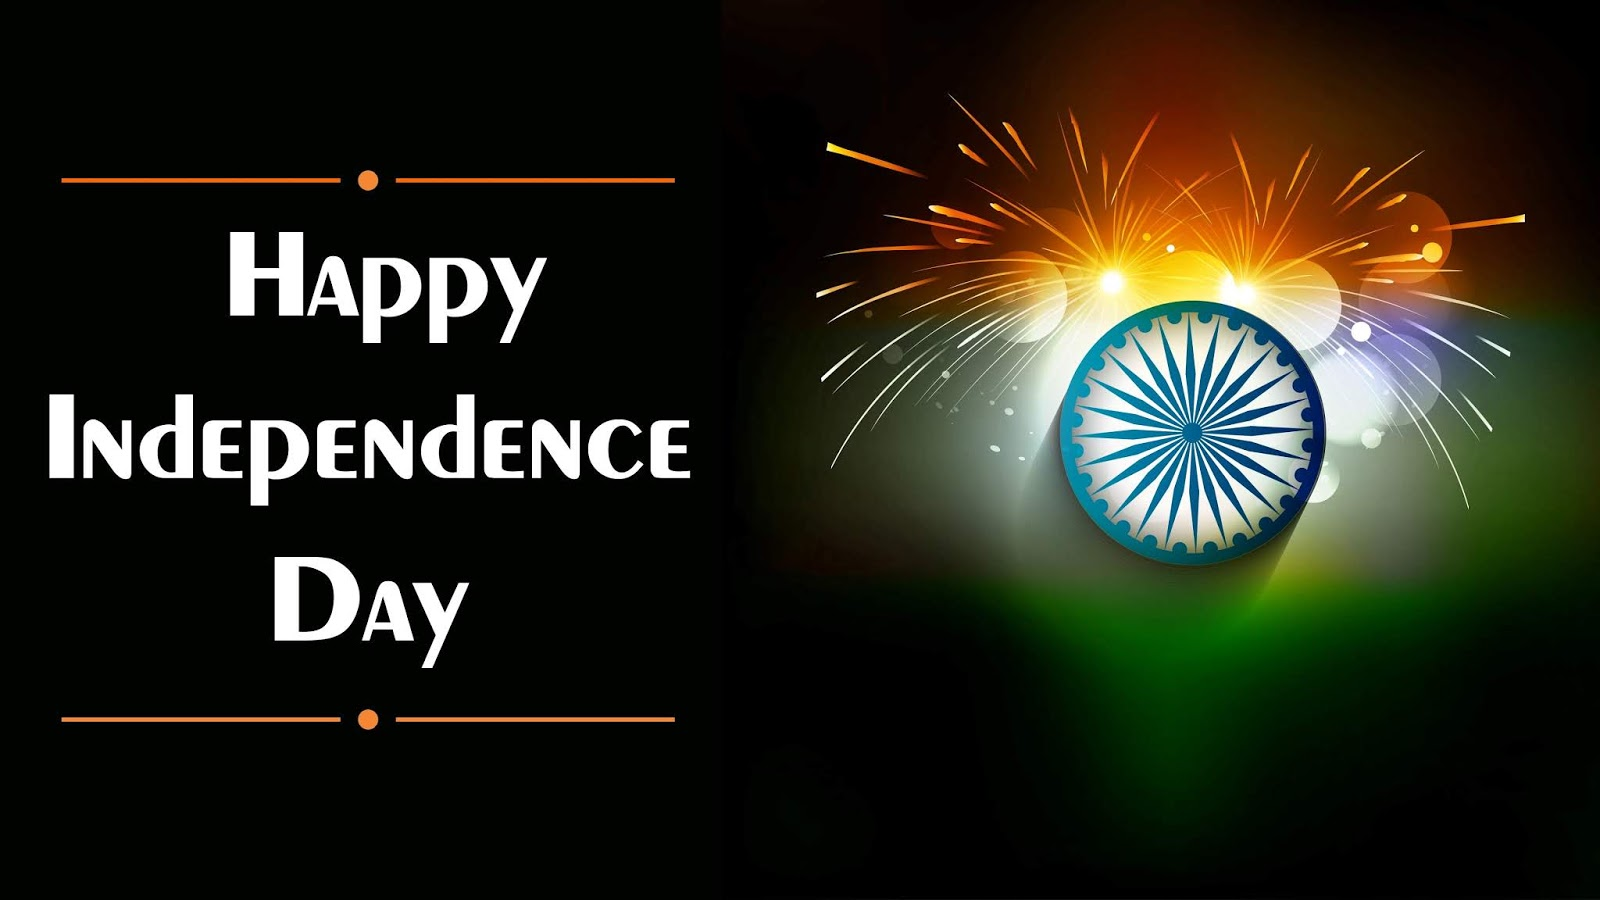 Happy Independence Day Images 2018 Wallpapers Hd Pictures Free